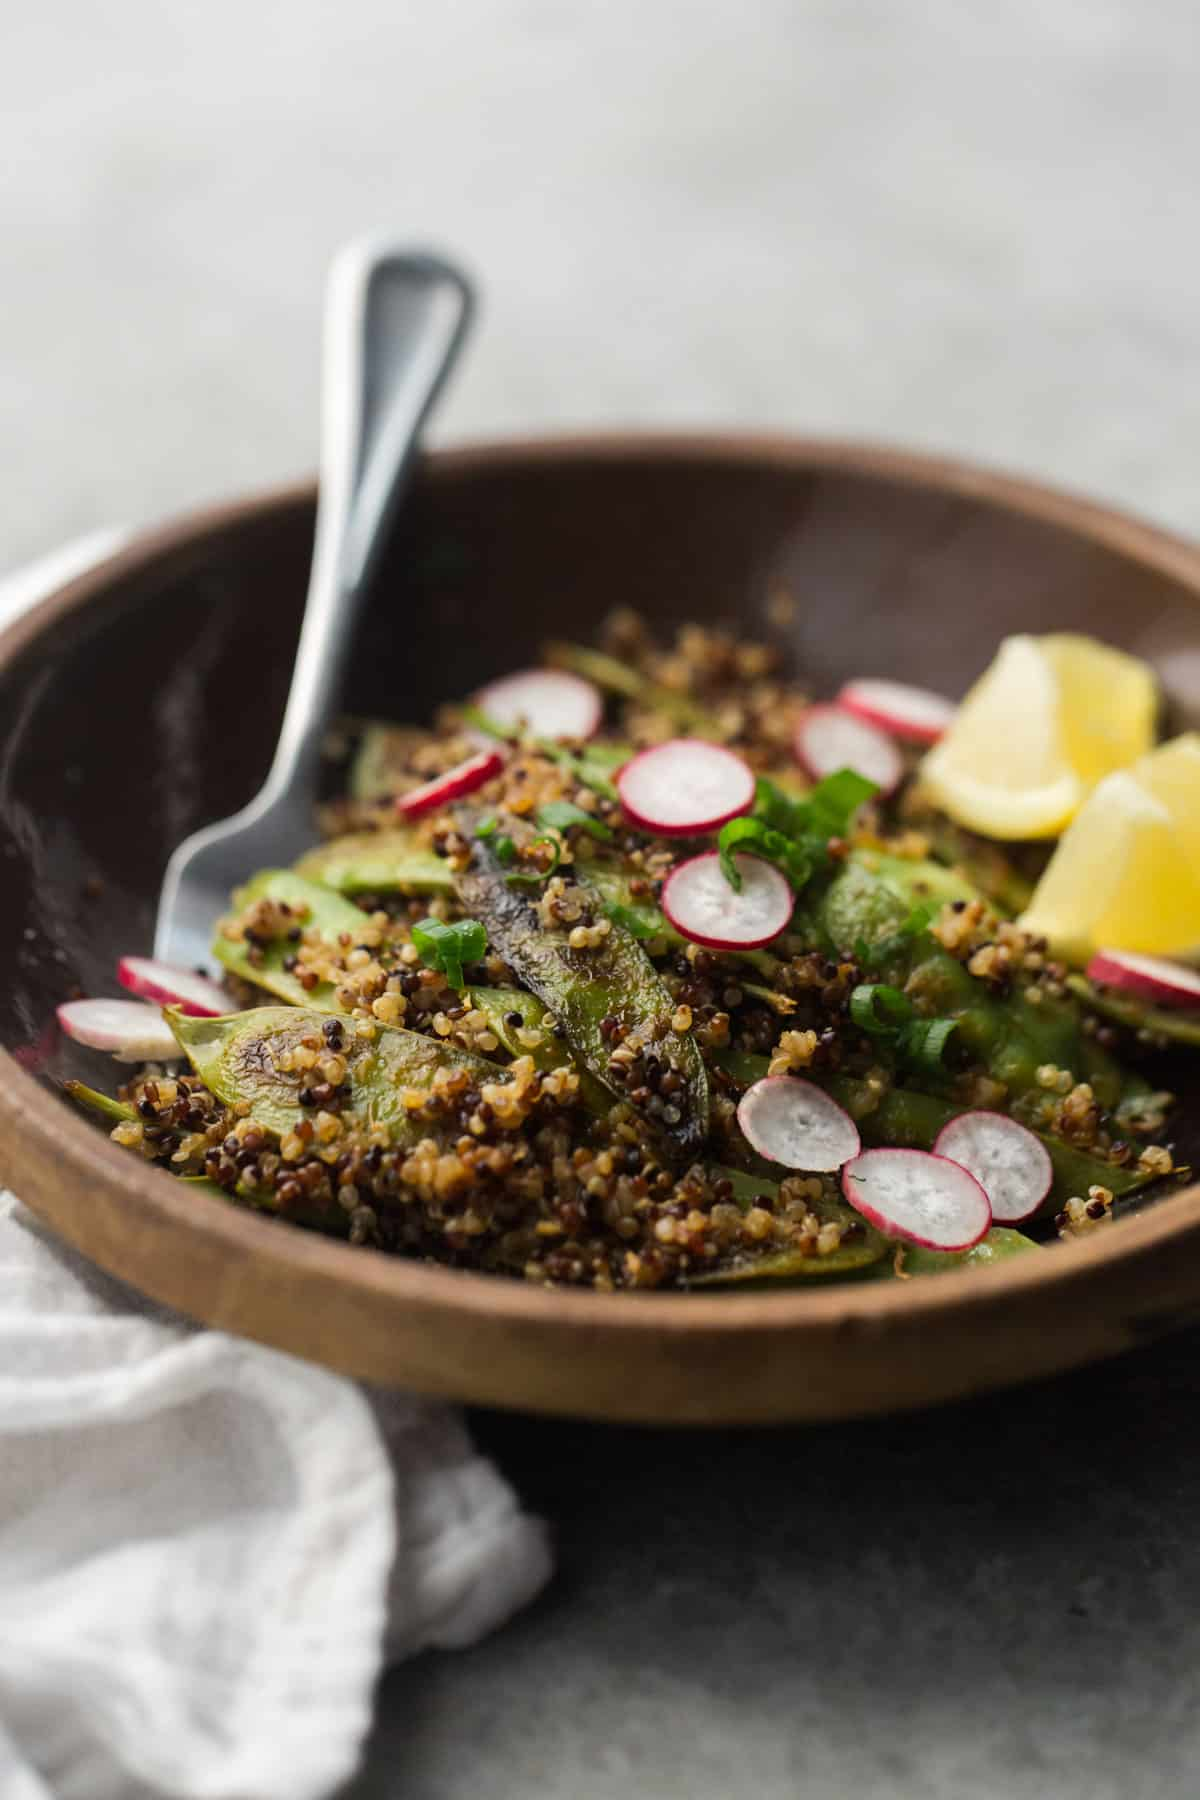 Spicy Snow Peas and Quinoa